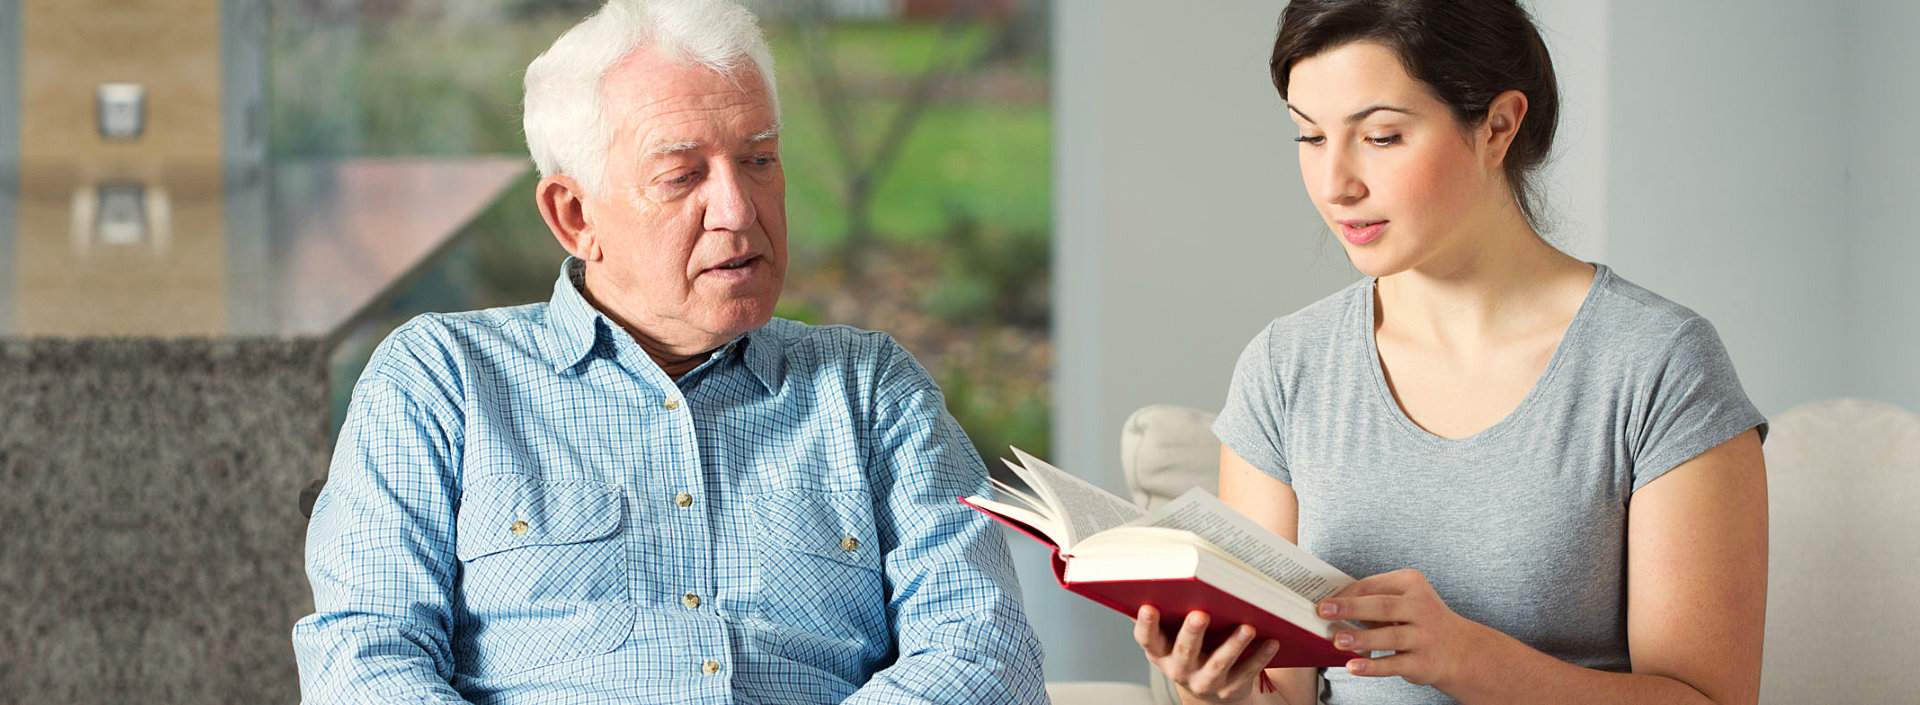 young woman reading books to an old man